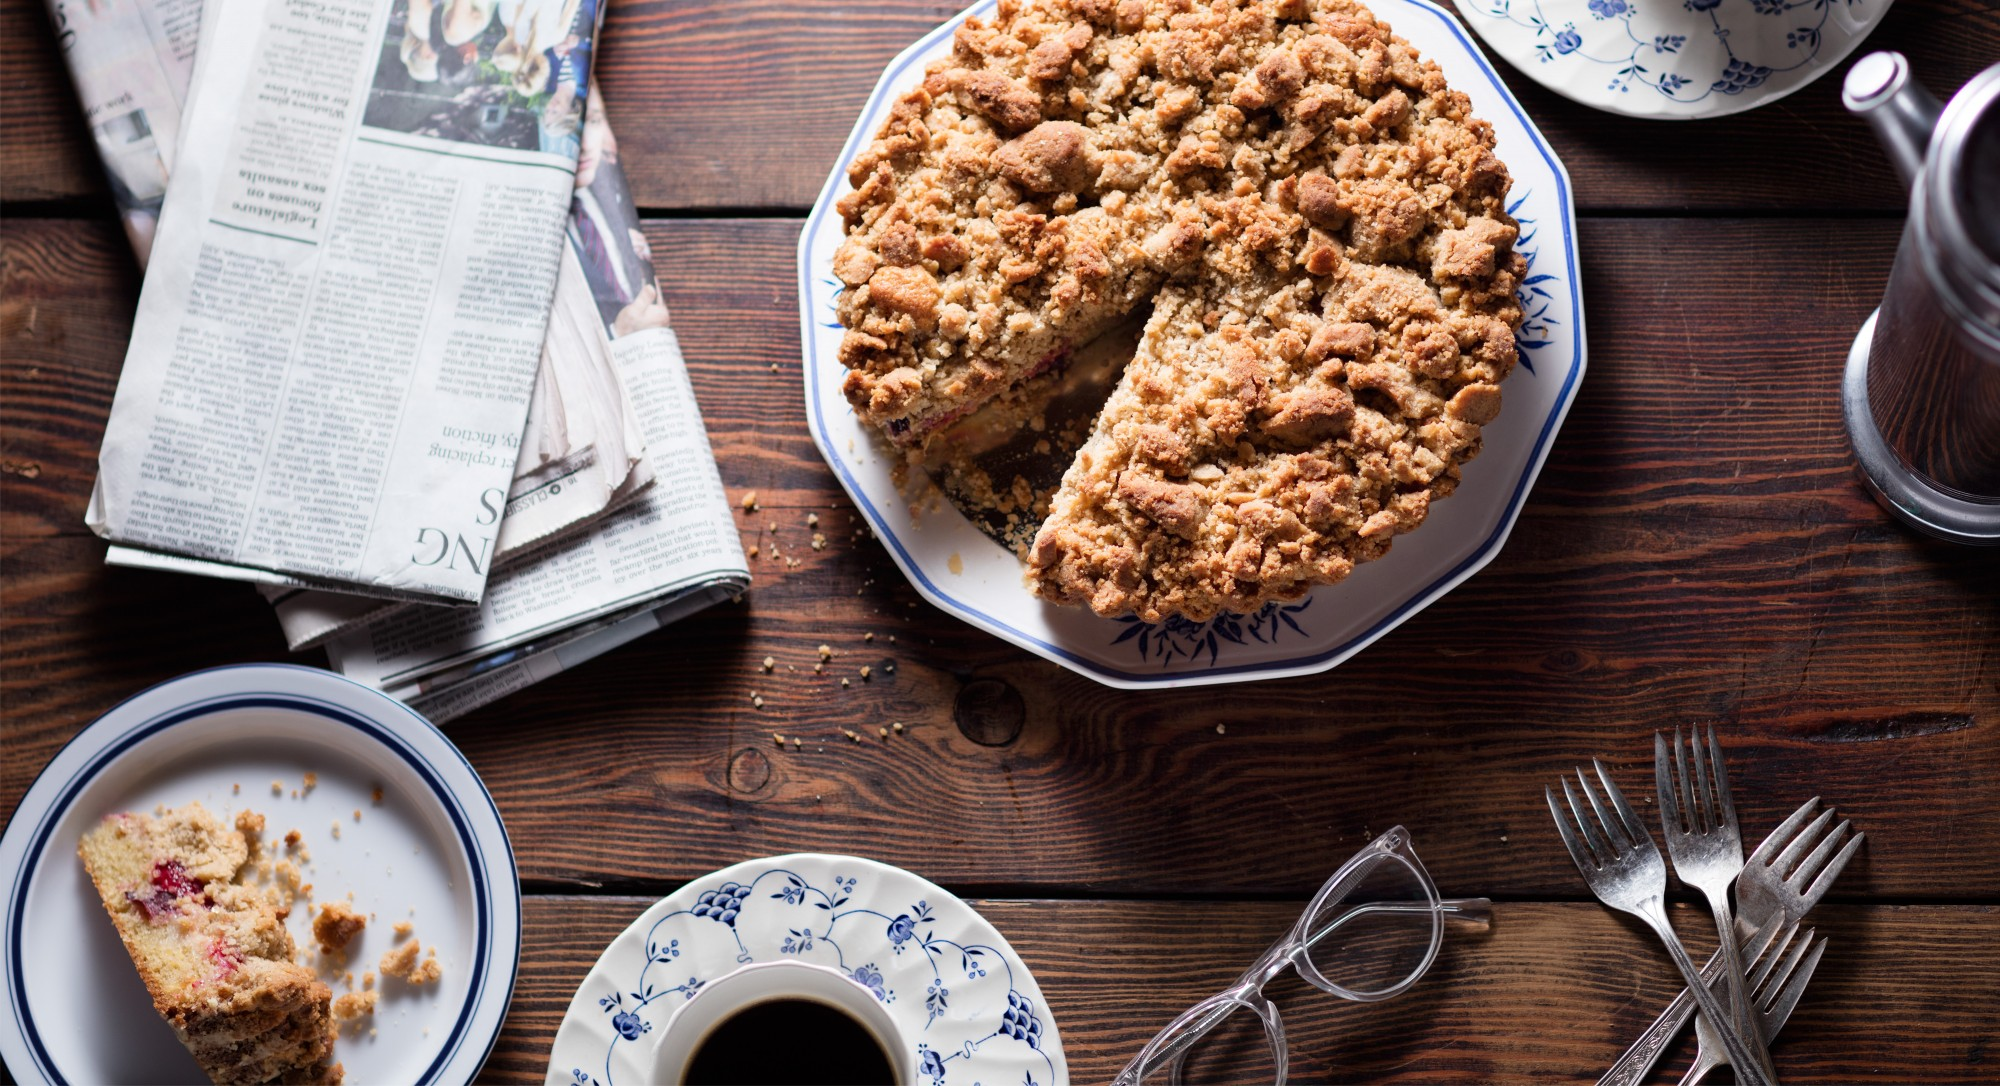 Italian Plum Coffee Cake Makes The Sweetest Mid-Afternoon Treat